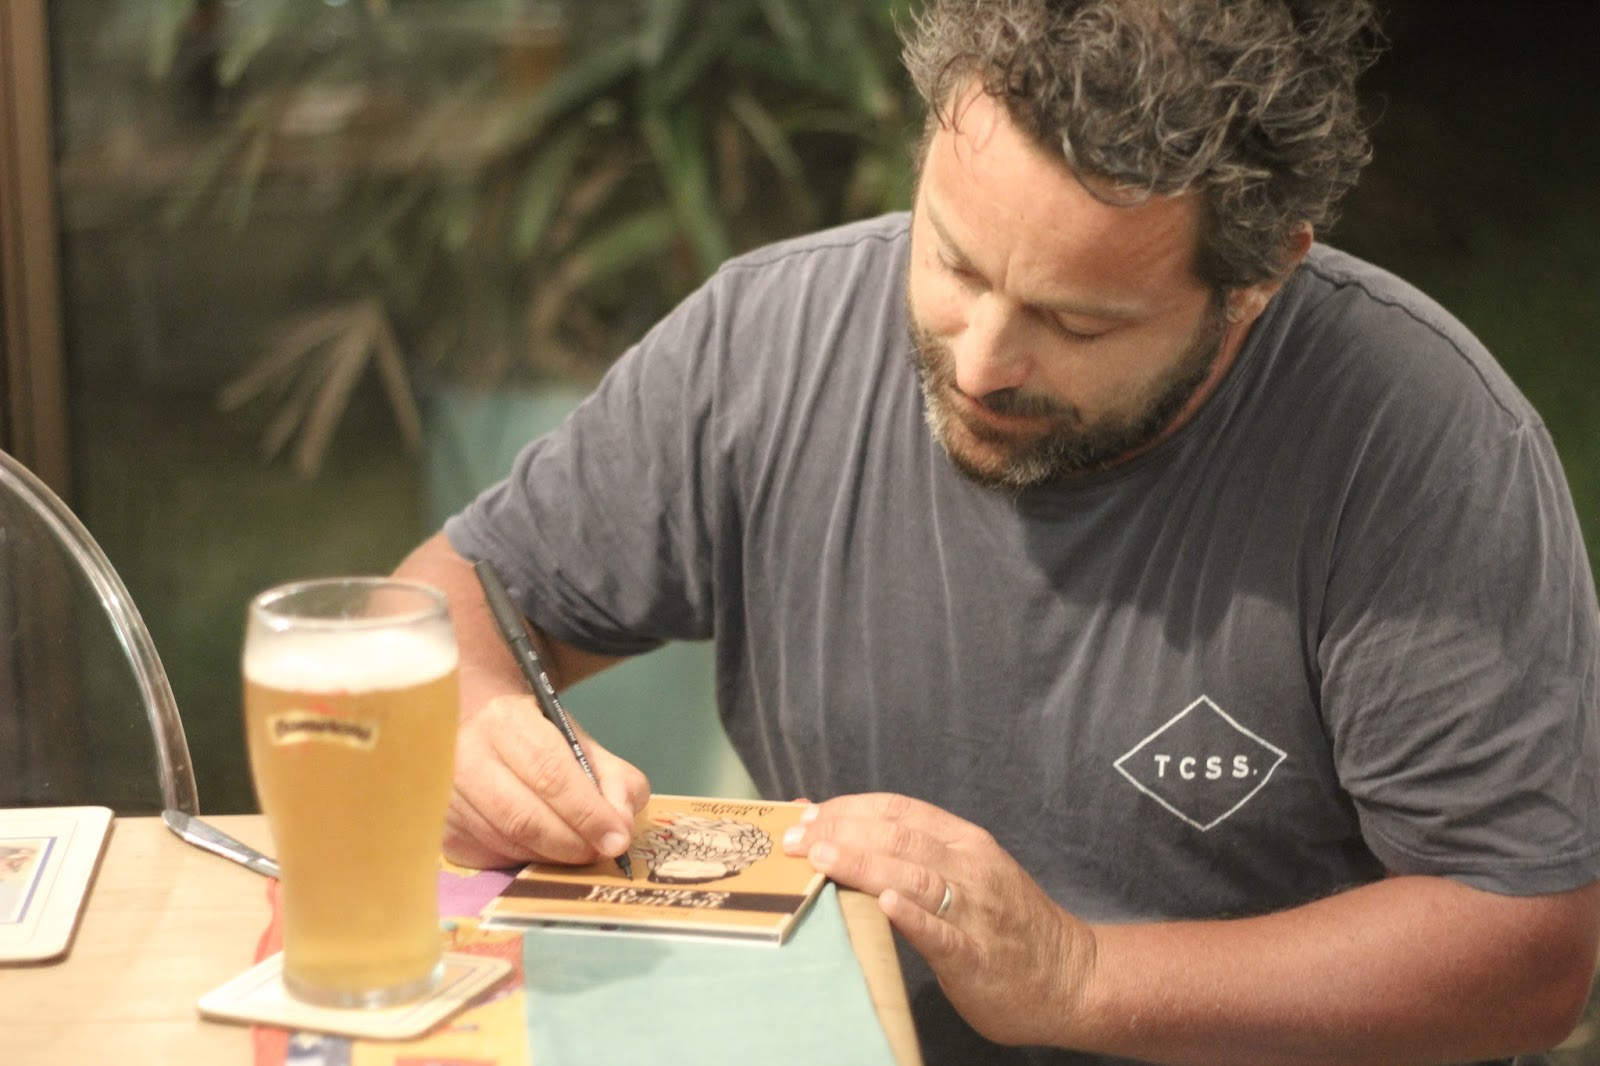 16-03-2016-australia-siebert-surfboards-15